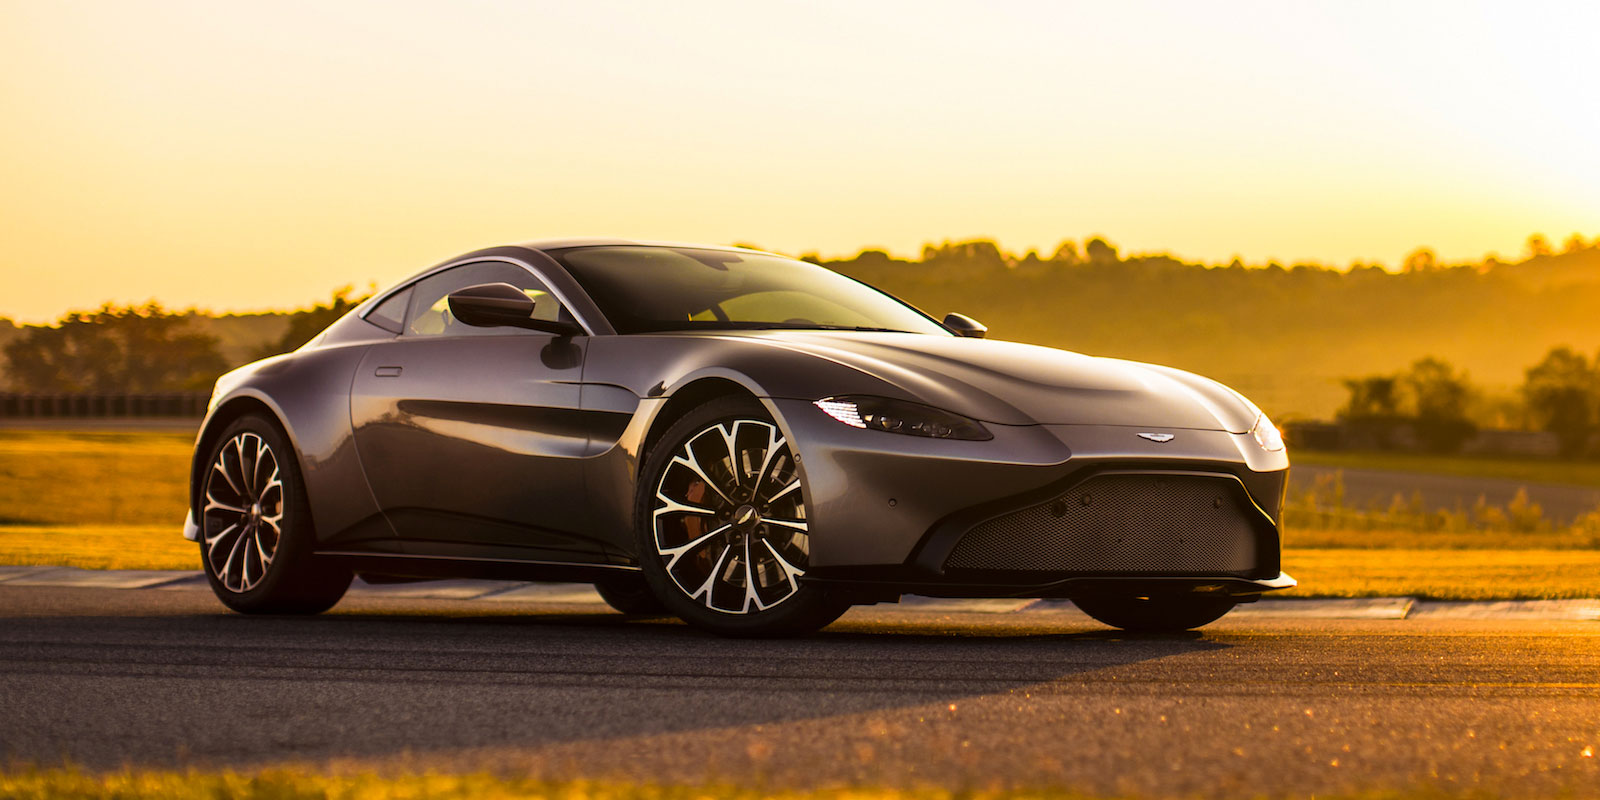 Aston Martin New Vantage - The Archetypal Hunter image 16